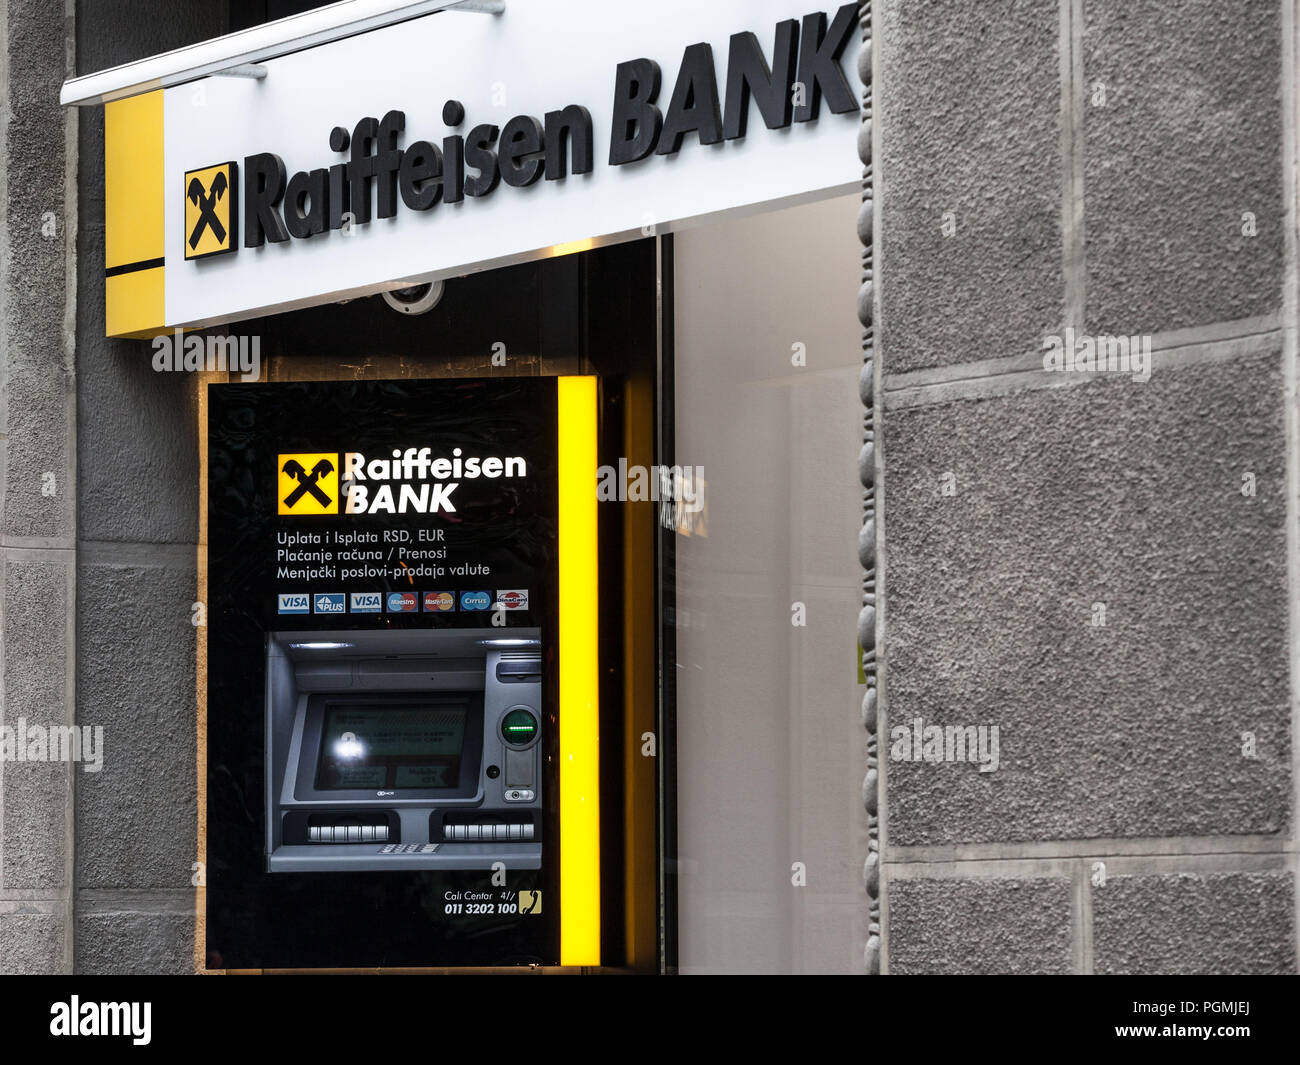 BELGRADE, SERBIA - AUGUST 26 , 2018: Raiffeisen logo on their main bank in Belgrade, with their ATm in background. Raiffeisen is an Austrian bank, mas - Stock Image